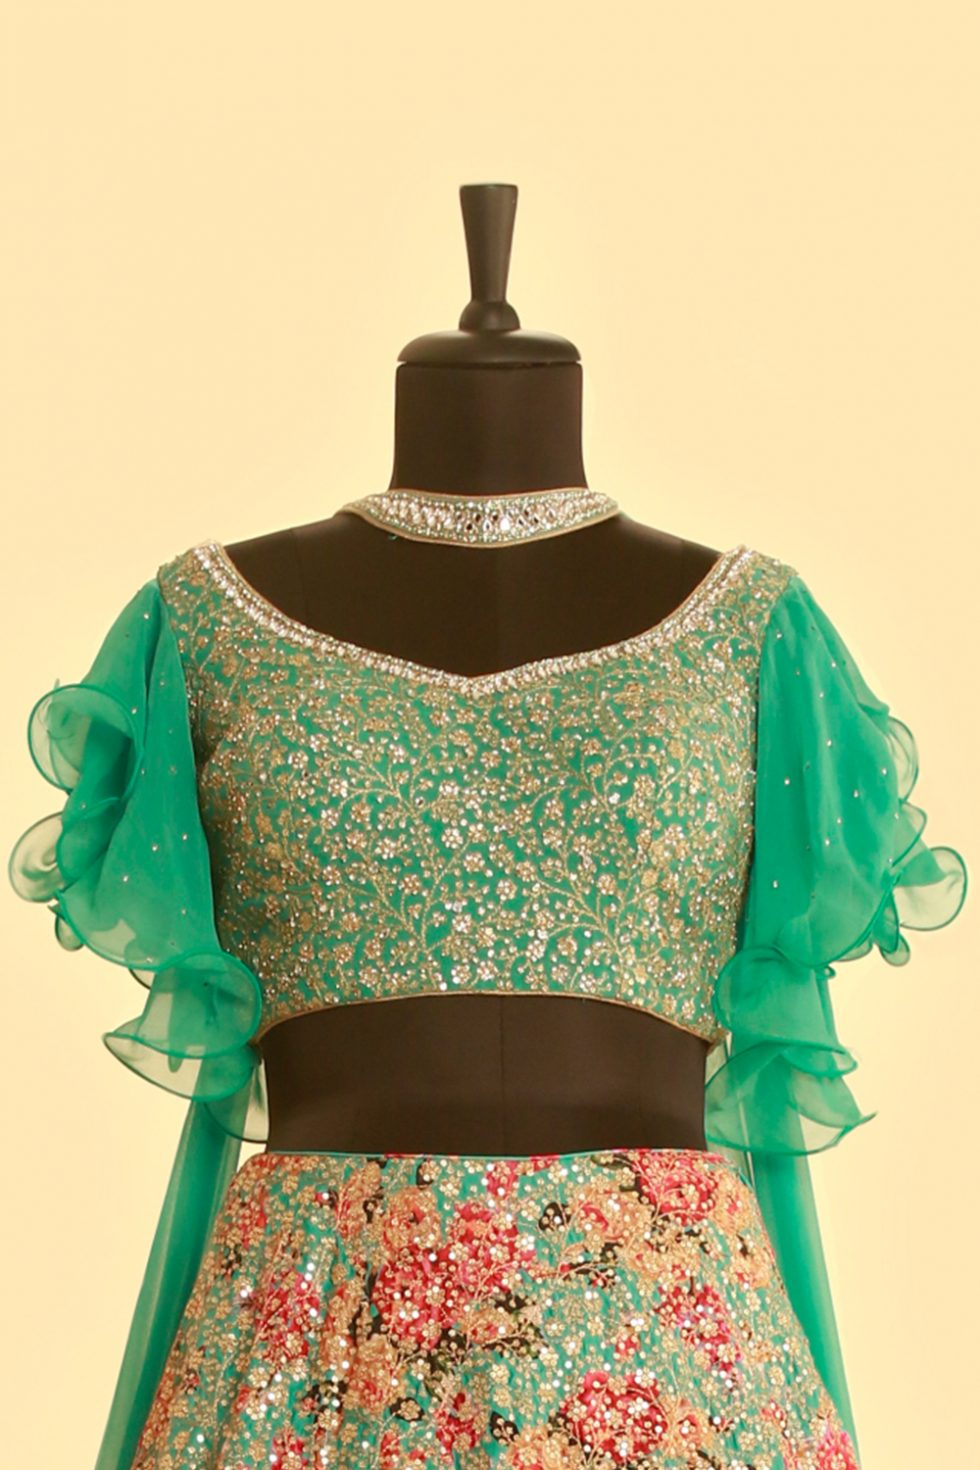 Sea green sequin lehenga set with floral motifs, frill sleeves and a matching necklace dupatta